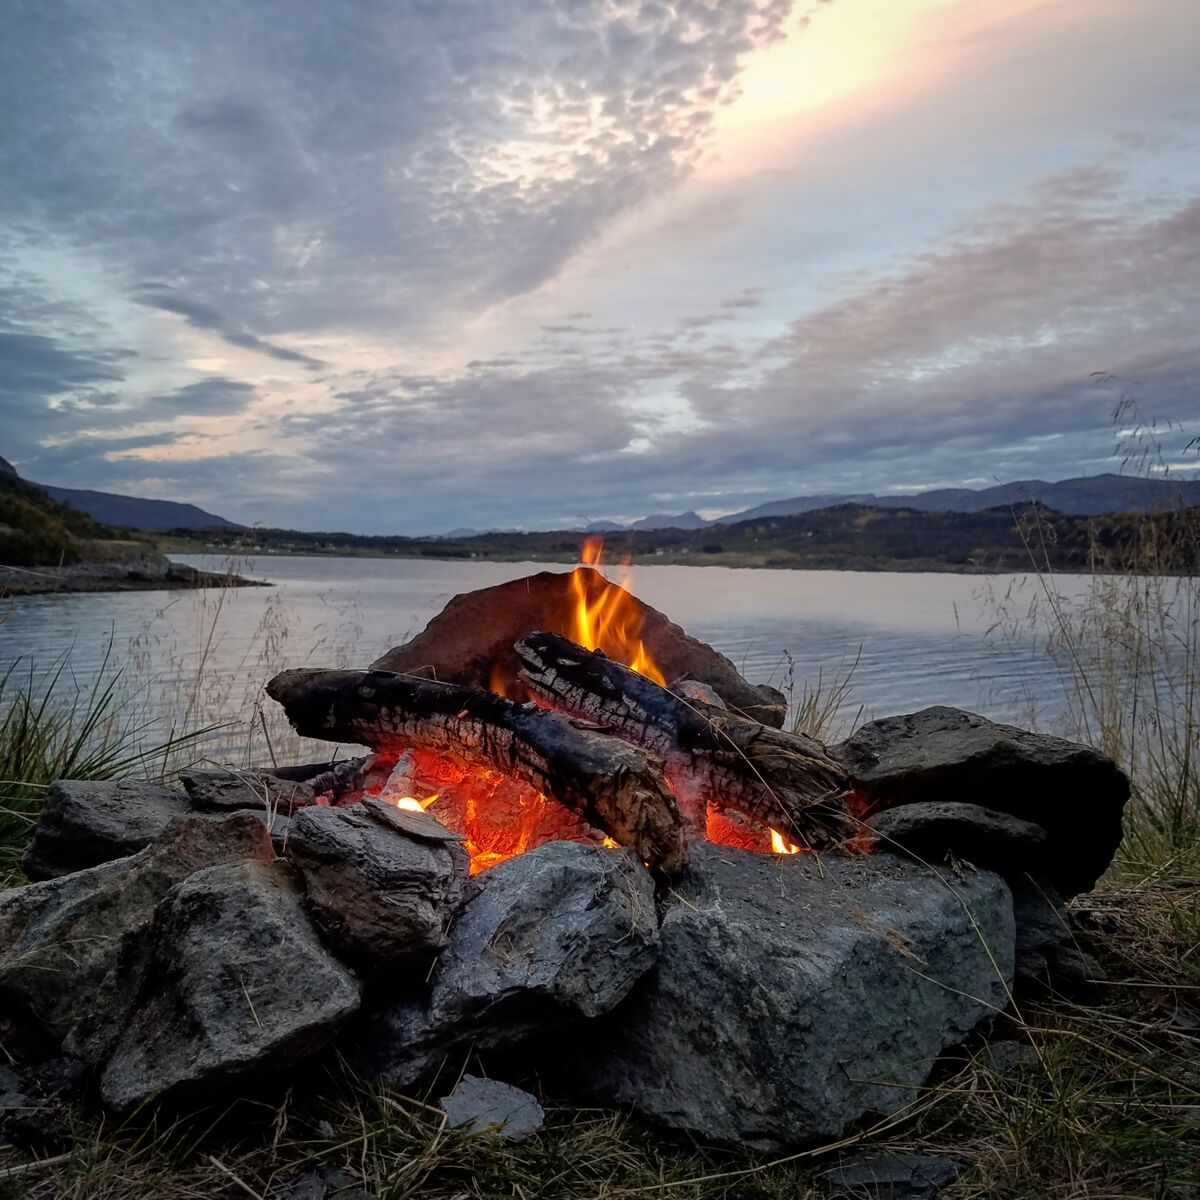 Fire By The Water.jpg